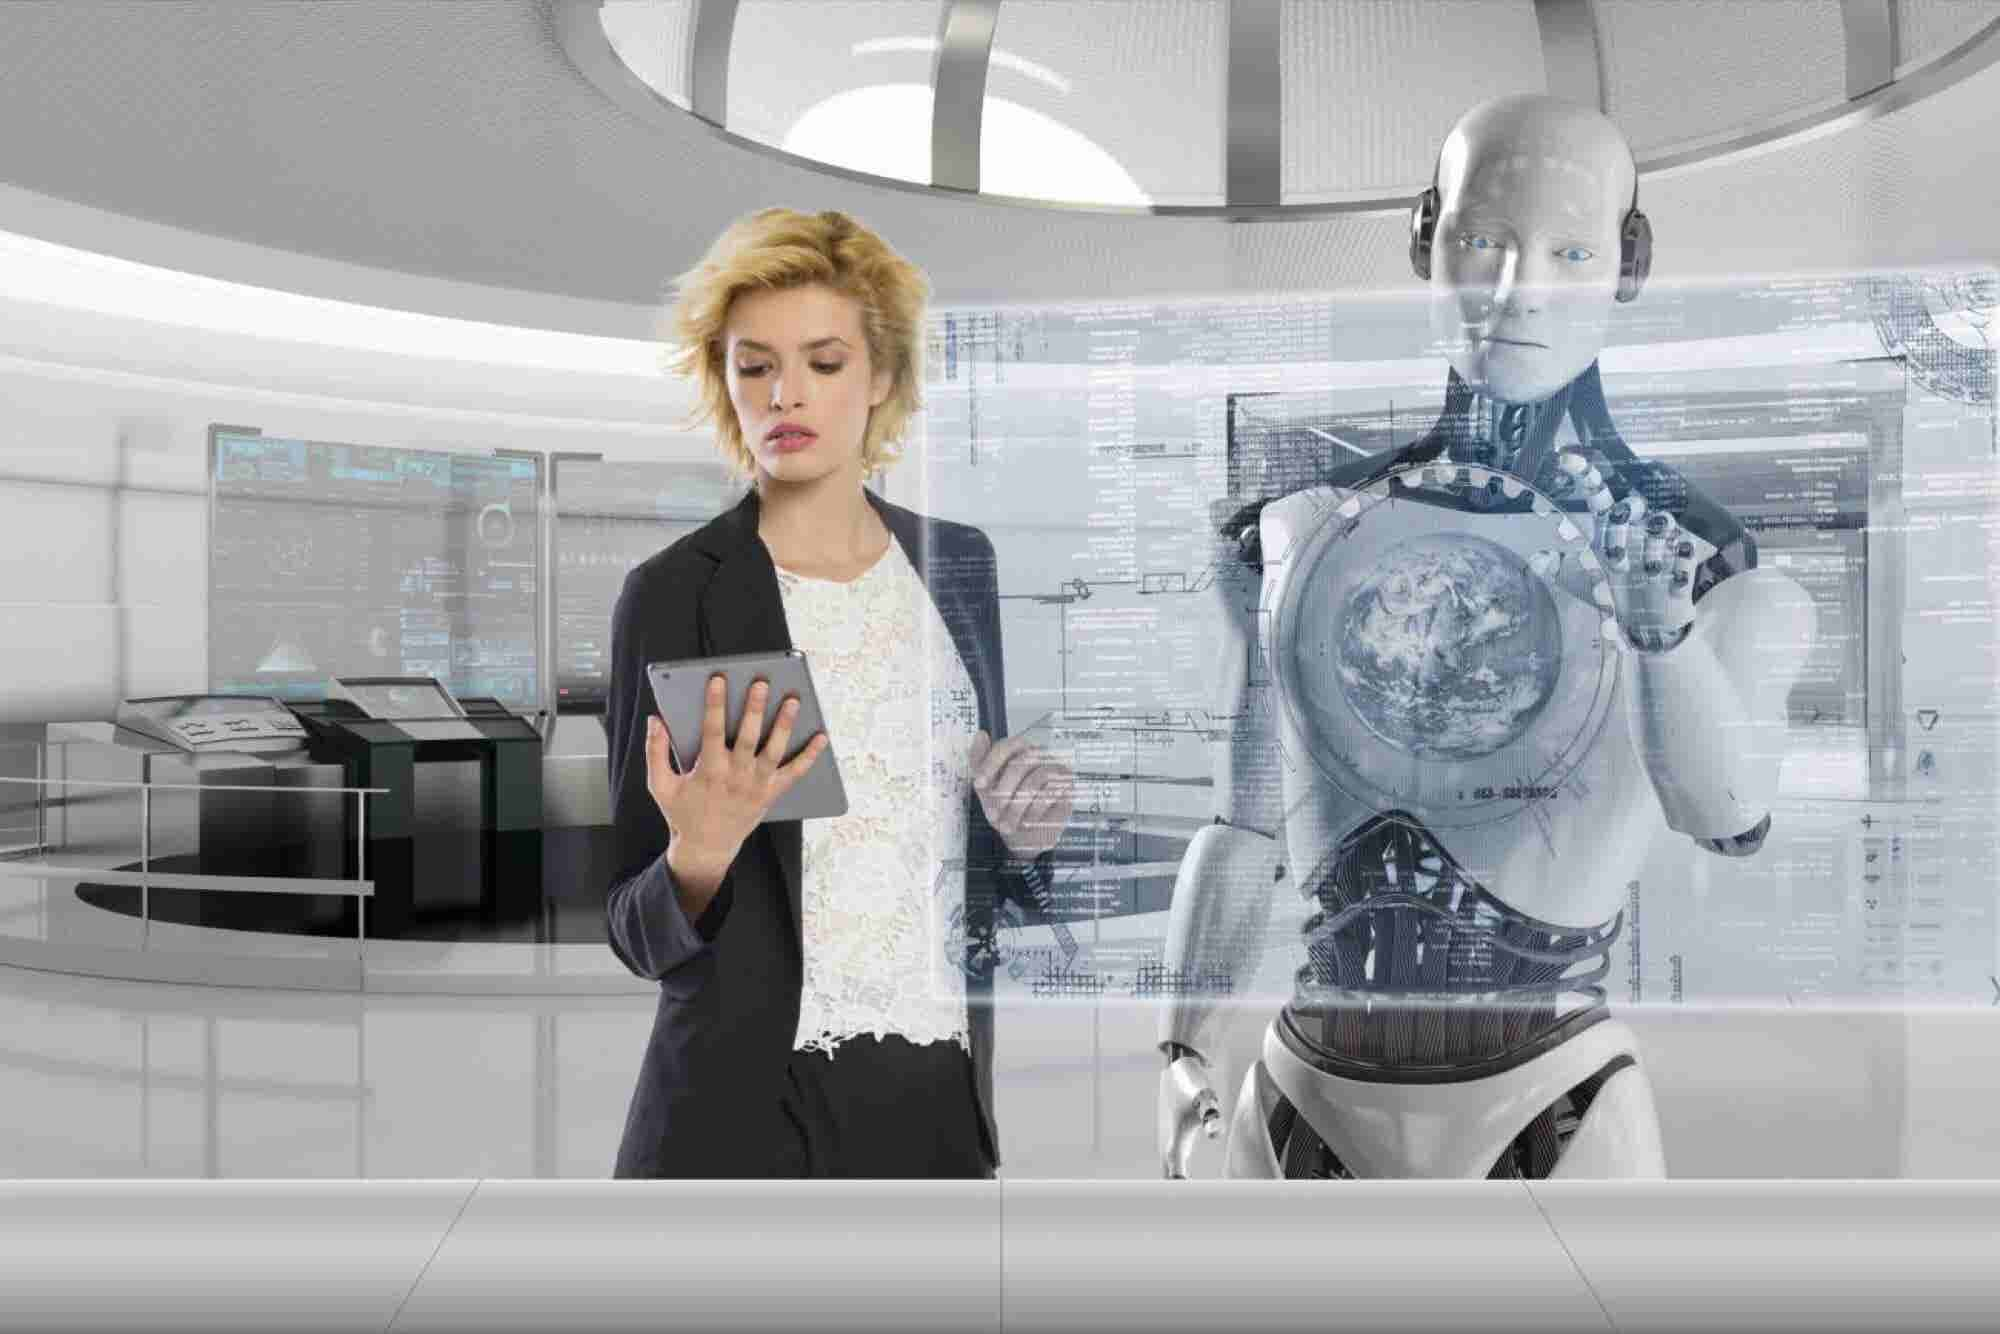 Robots May Replace Some Jobs, But Your Human Team Members Should Be There to Guide Them